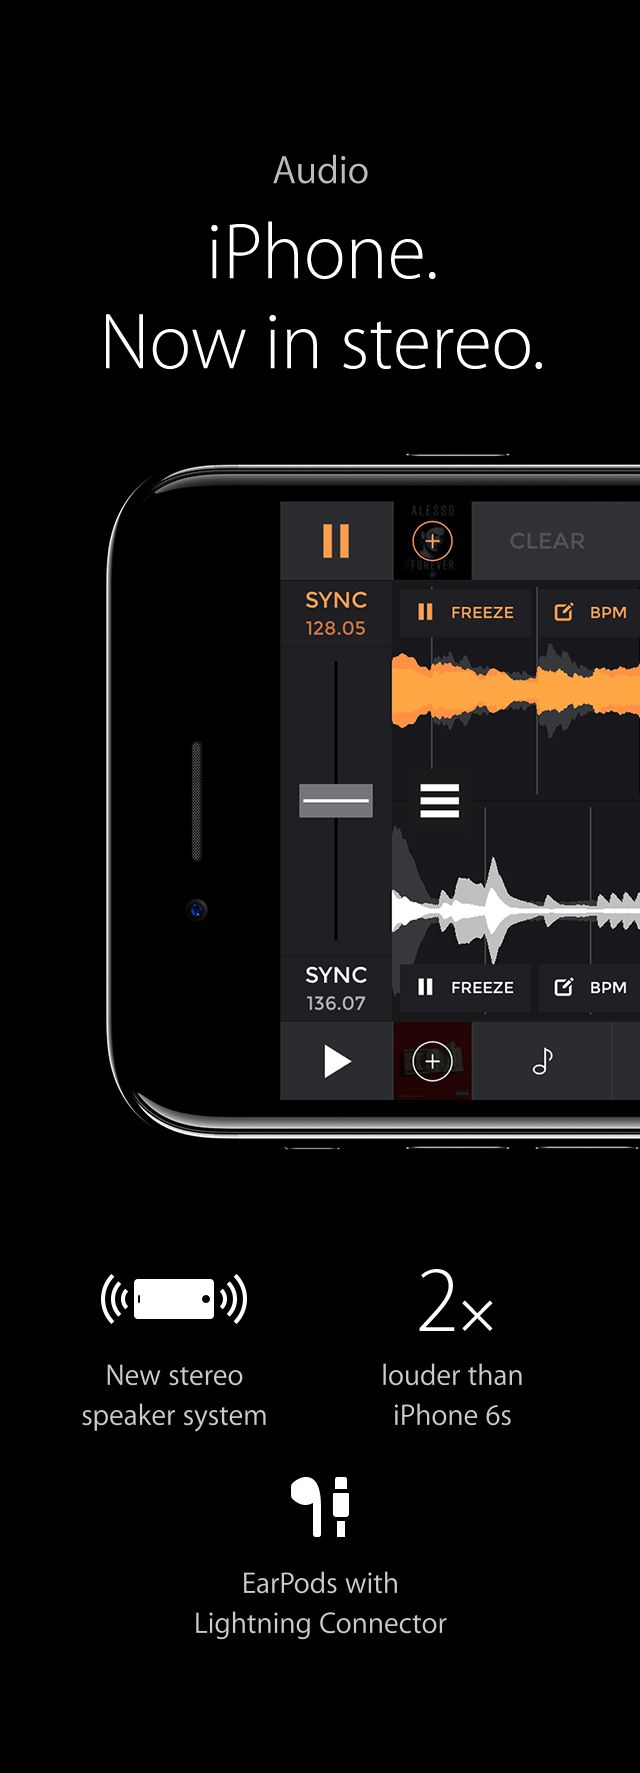 Audio - iPhone. Now in stereo.